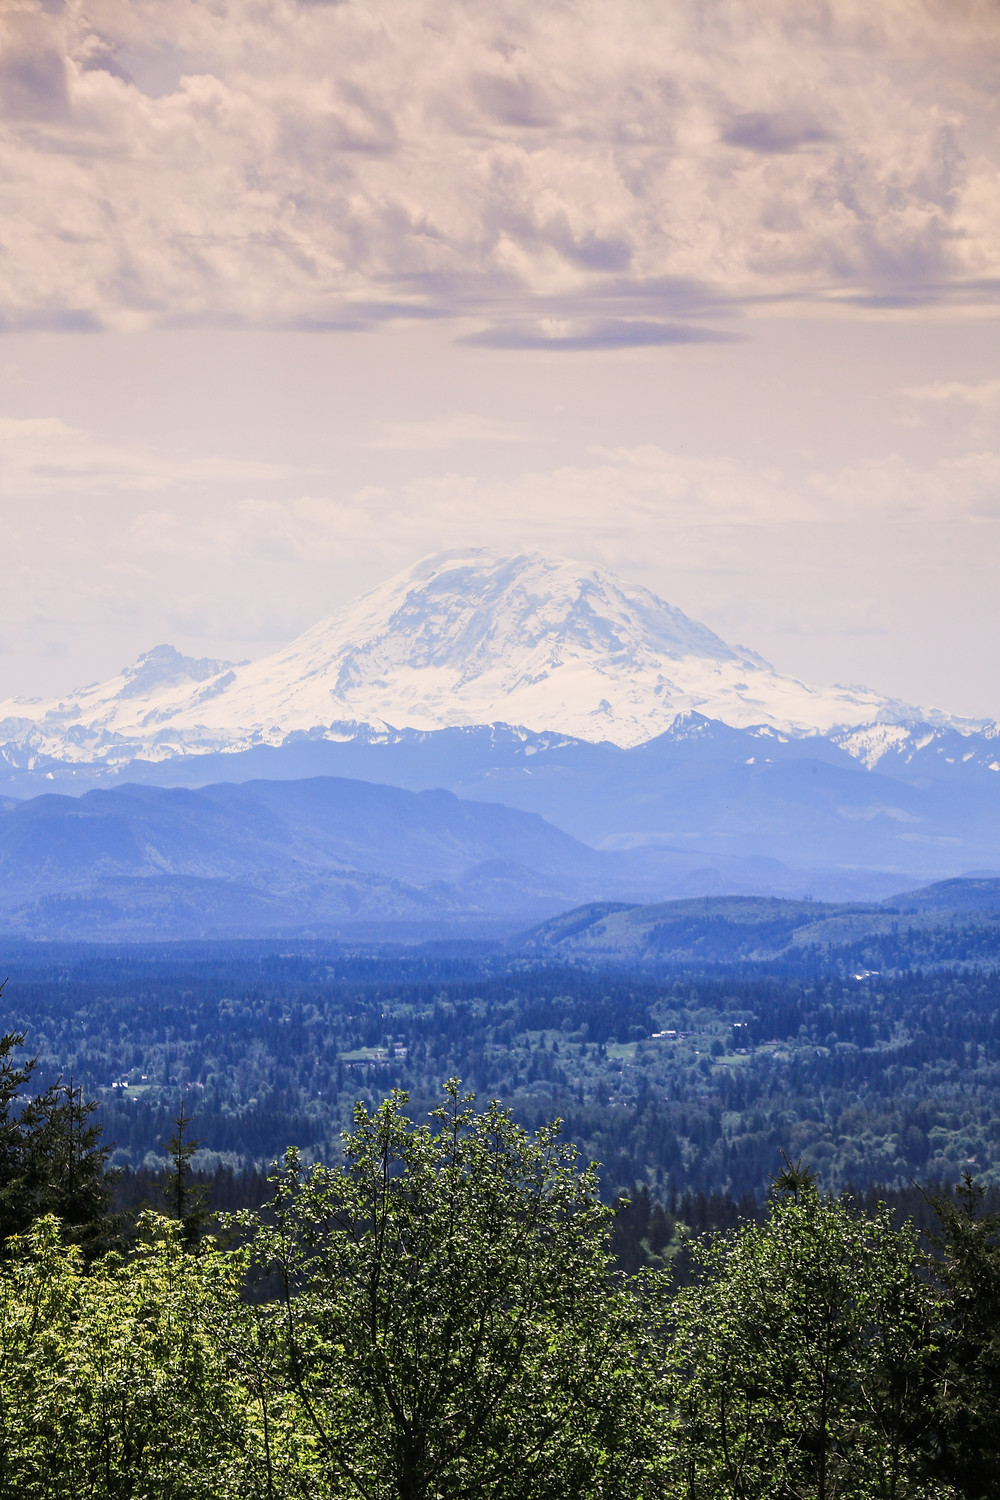 Mount Rainier as seen from Poo Poo Point